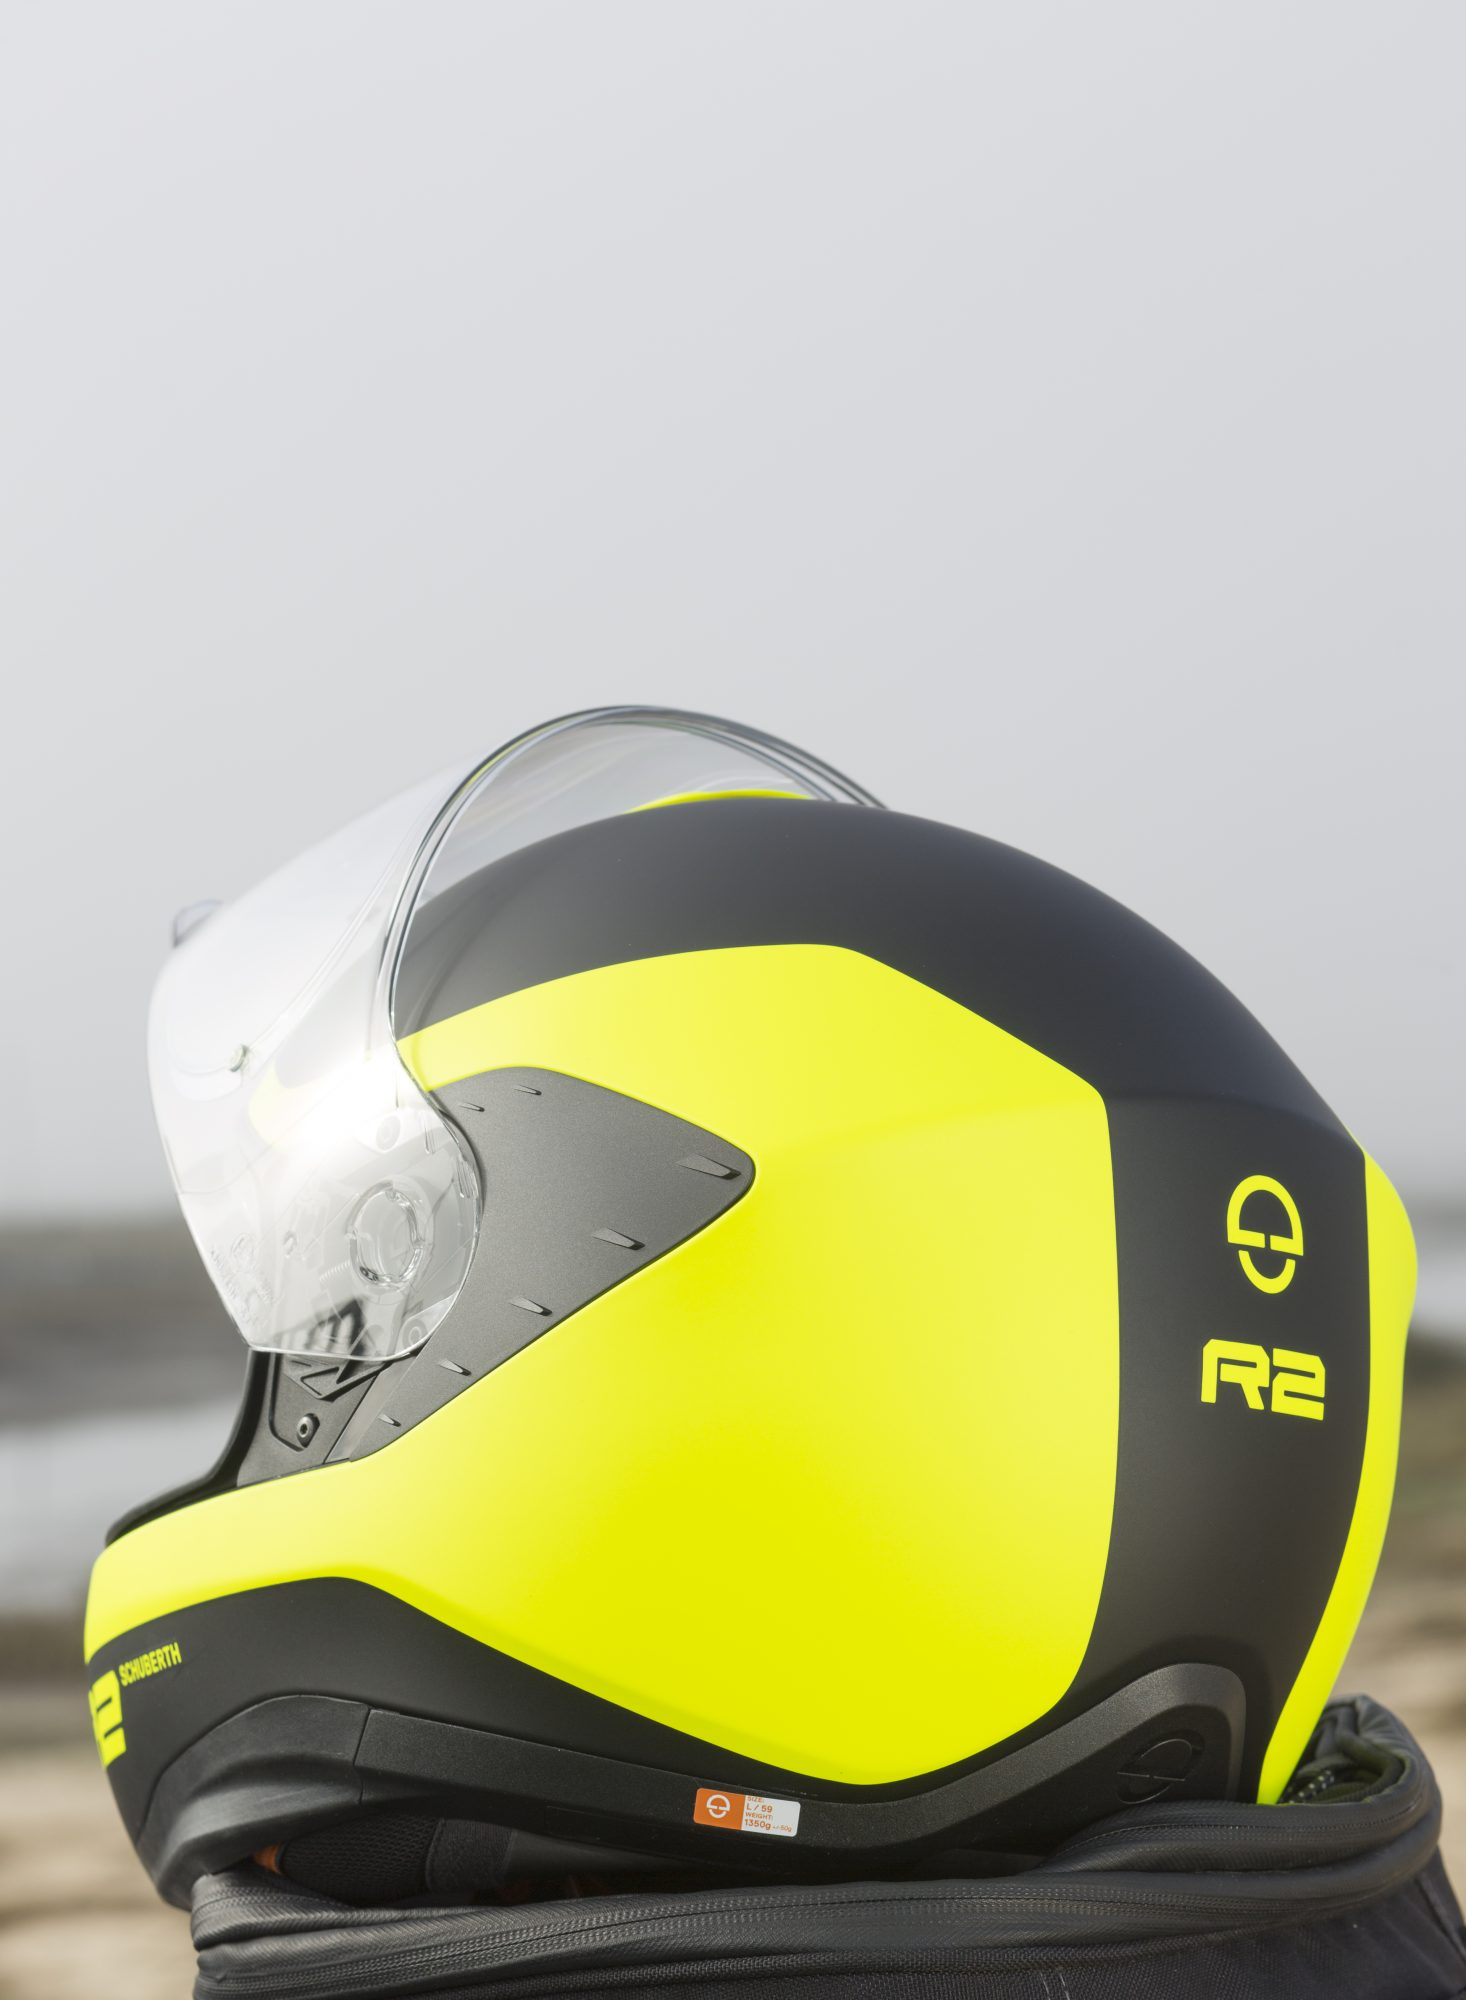 casque Schubert R2